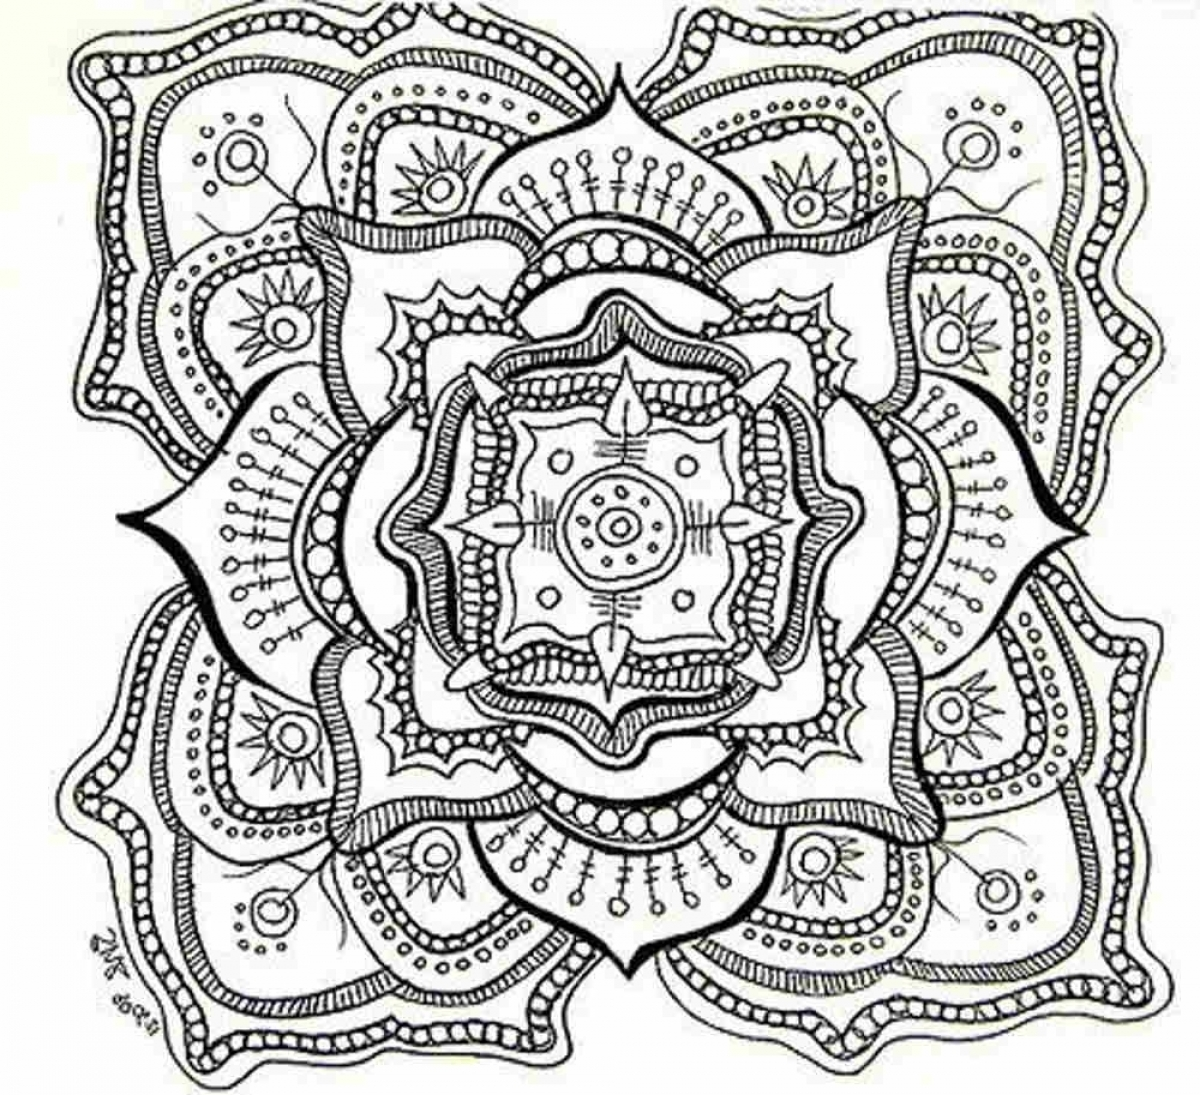 Get This Free Trippy Coloring Pages to Print for Adults GH6S4